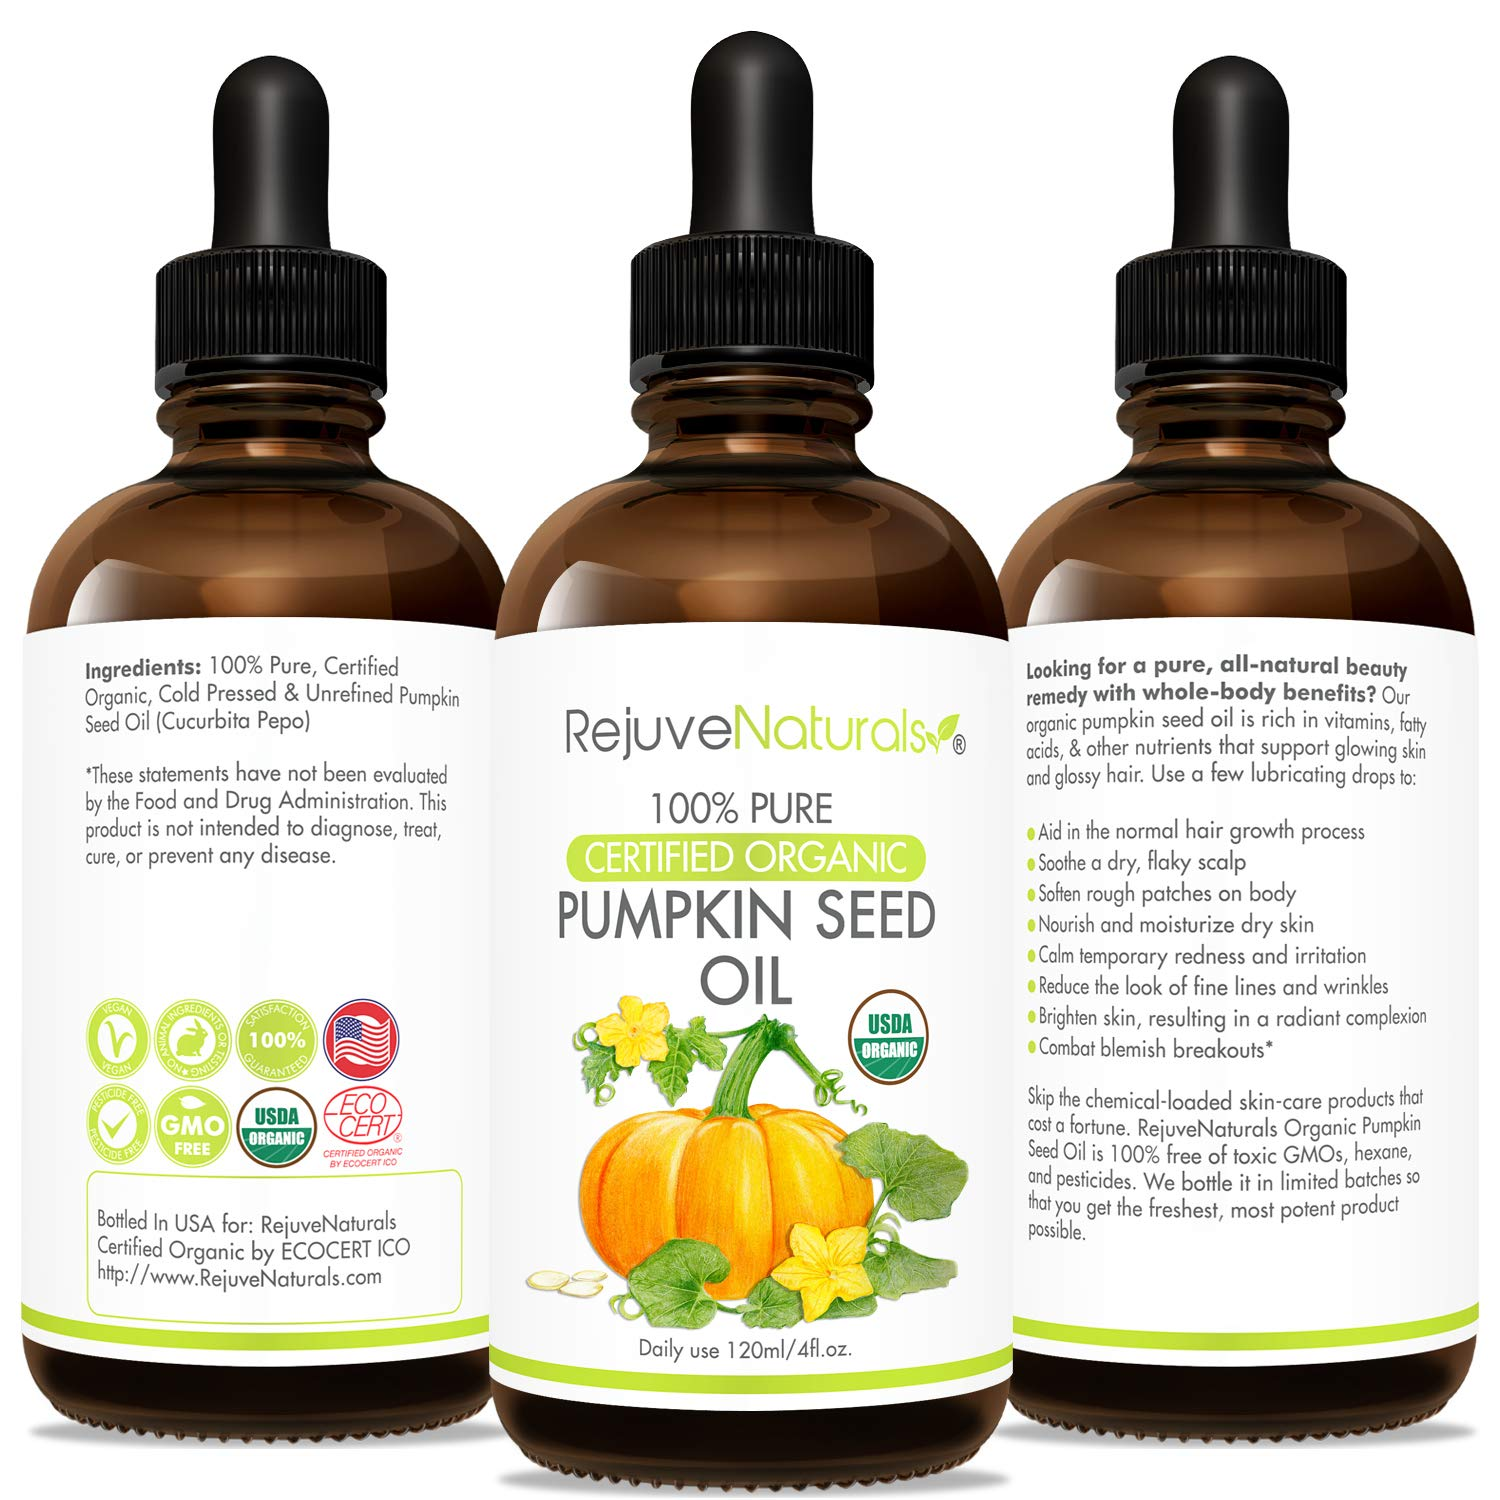 Organic Pumpkin Seed Oil (LARGE 4-OZ Bottle) USDA Certified Organic, 100% Pure, Cold Pressed. Boost Hair Growth for Eyelashes, Eyebrows & Hair. Overactive Bladder Control for Men & Women. Moisturizer: Beauty